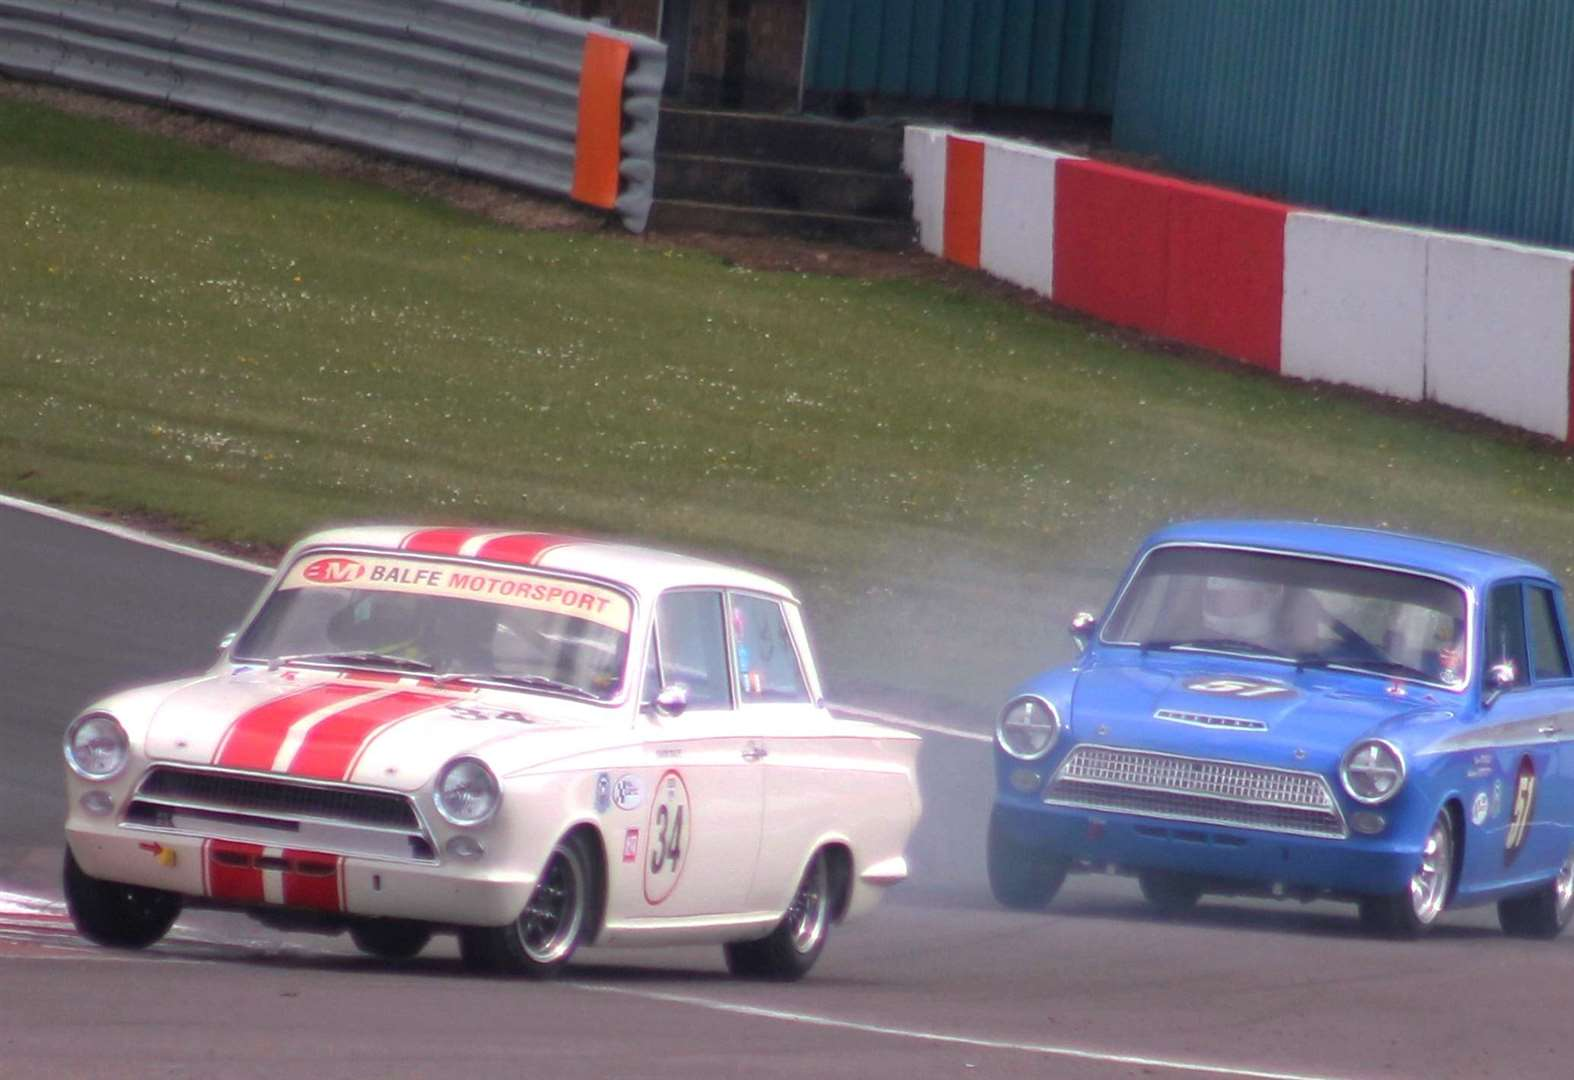 Caythorpe driver Balfe races classic Lotus Cortina to finish on the podium